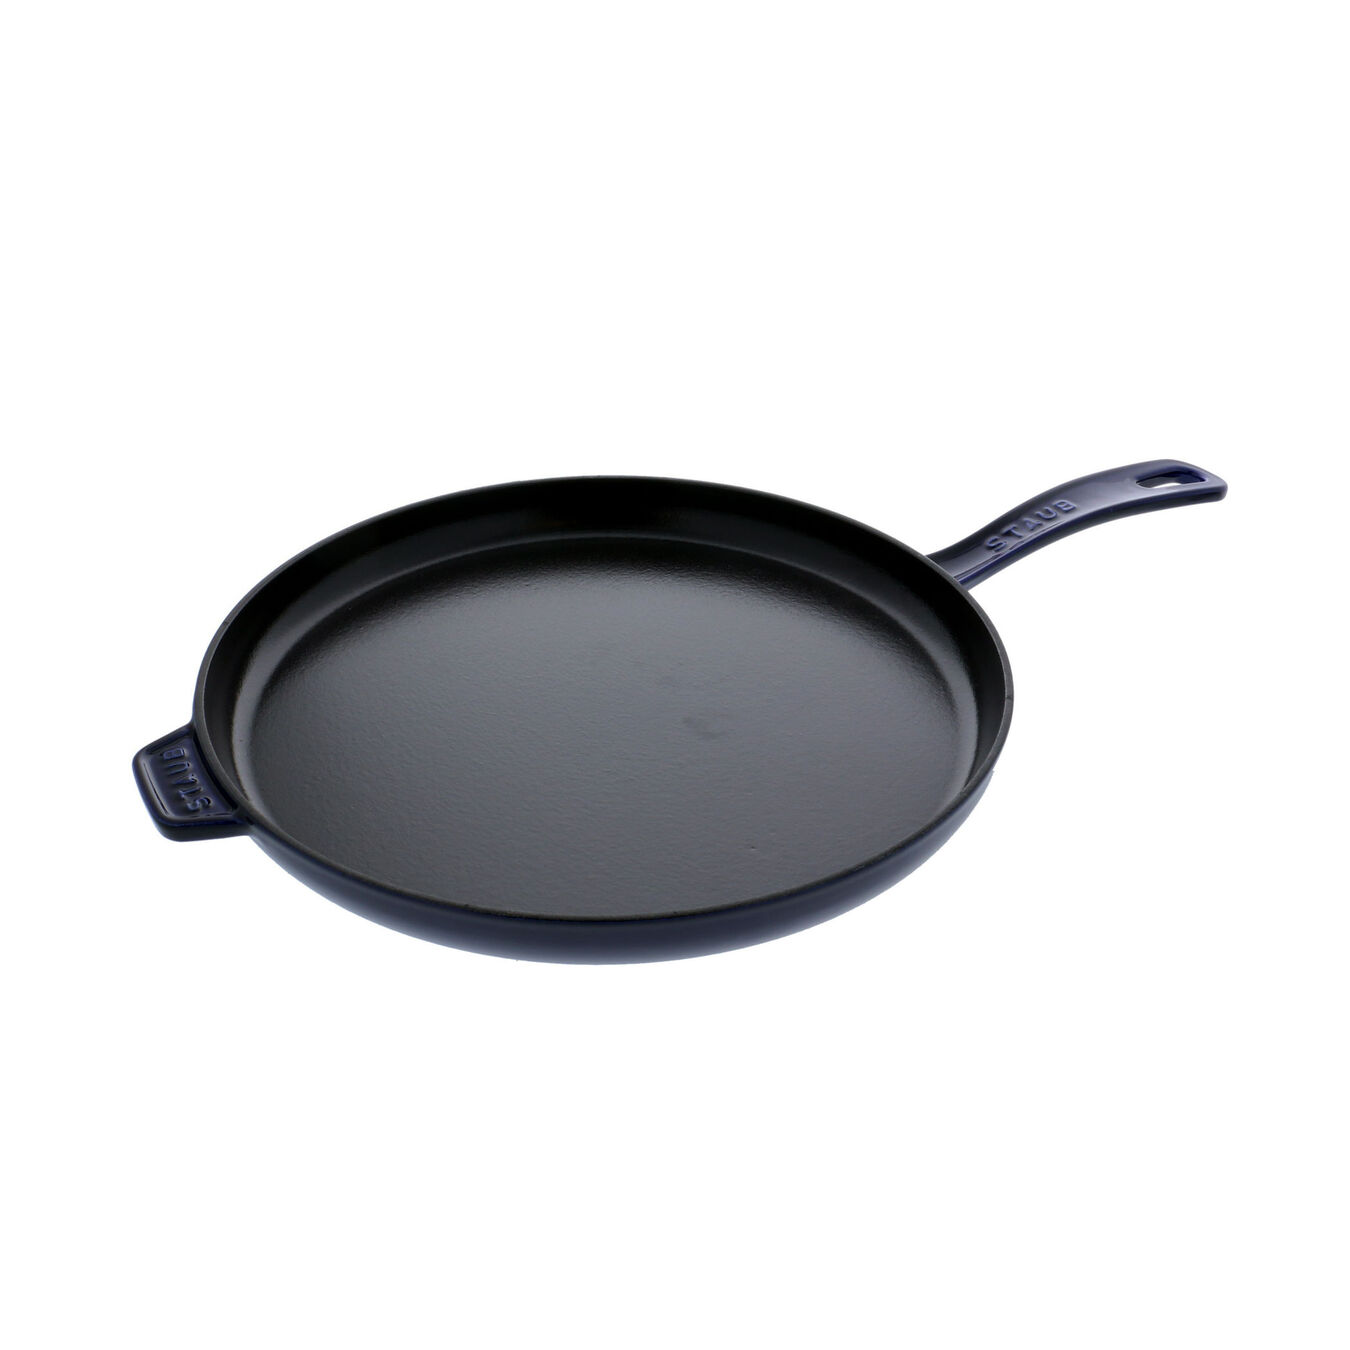 12-inch Round Breakfast Pan - Visual Imperfections - Dark Blue,,large 1